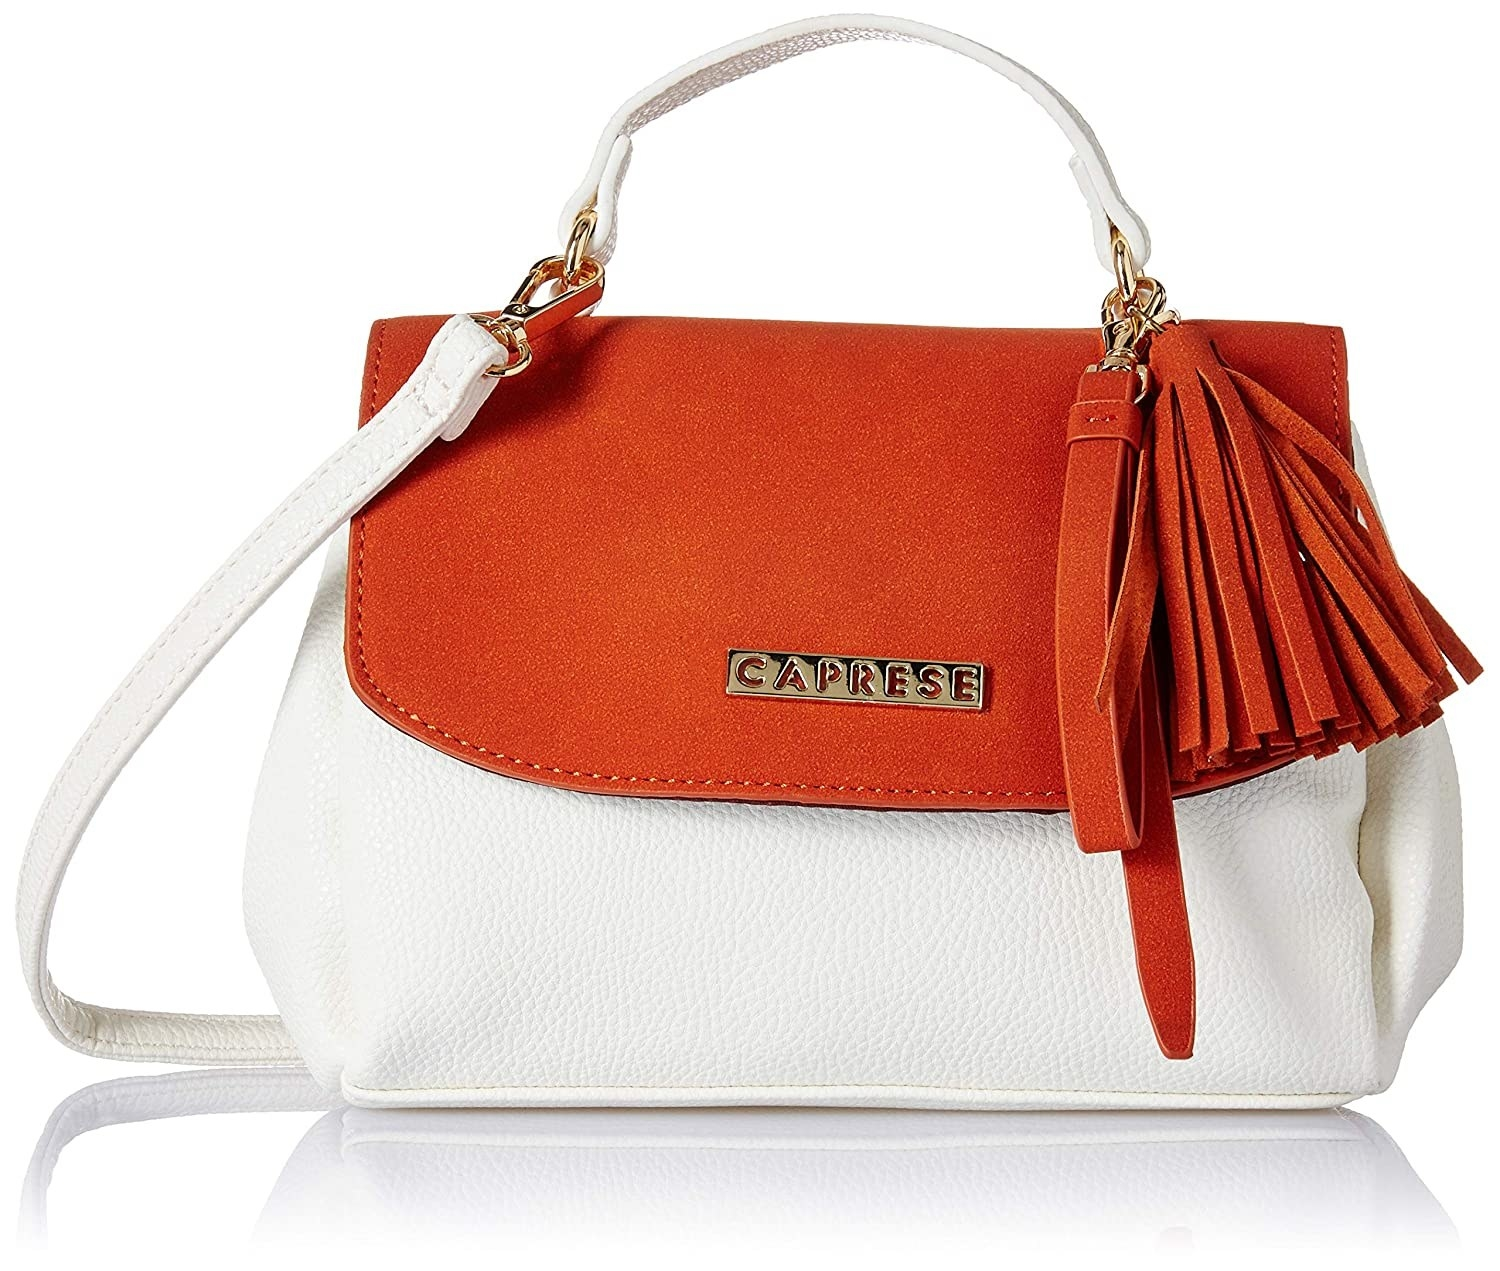 An orange and white slingbag